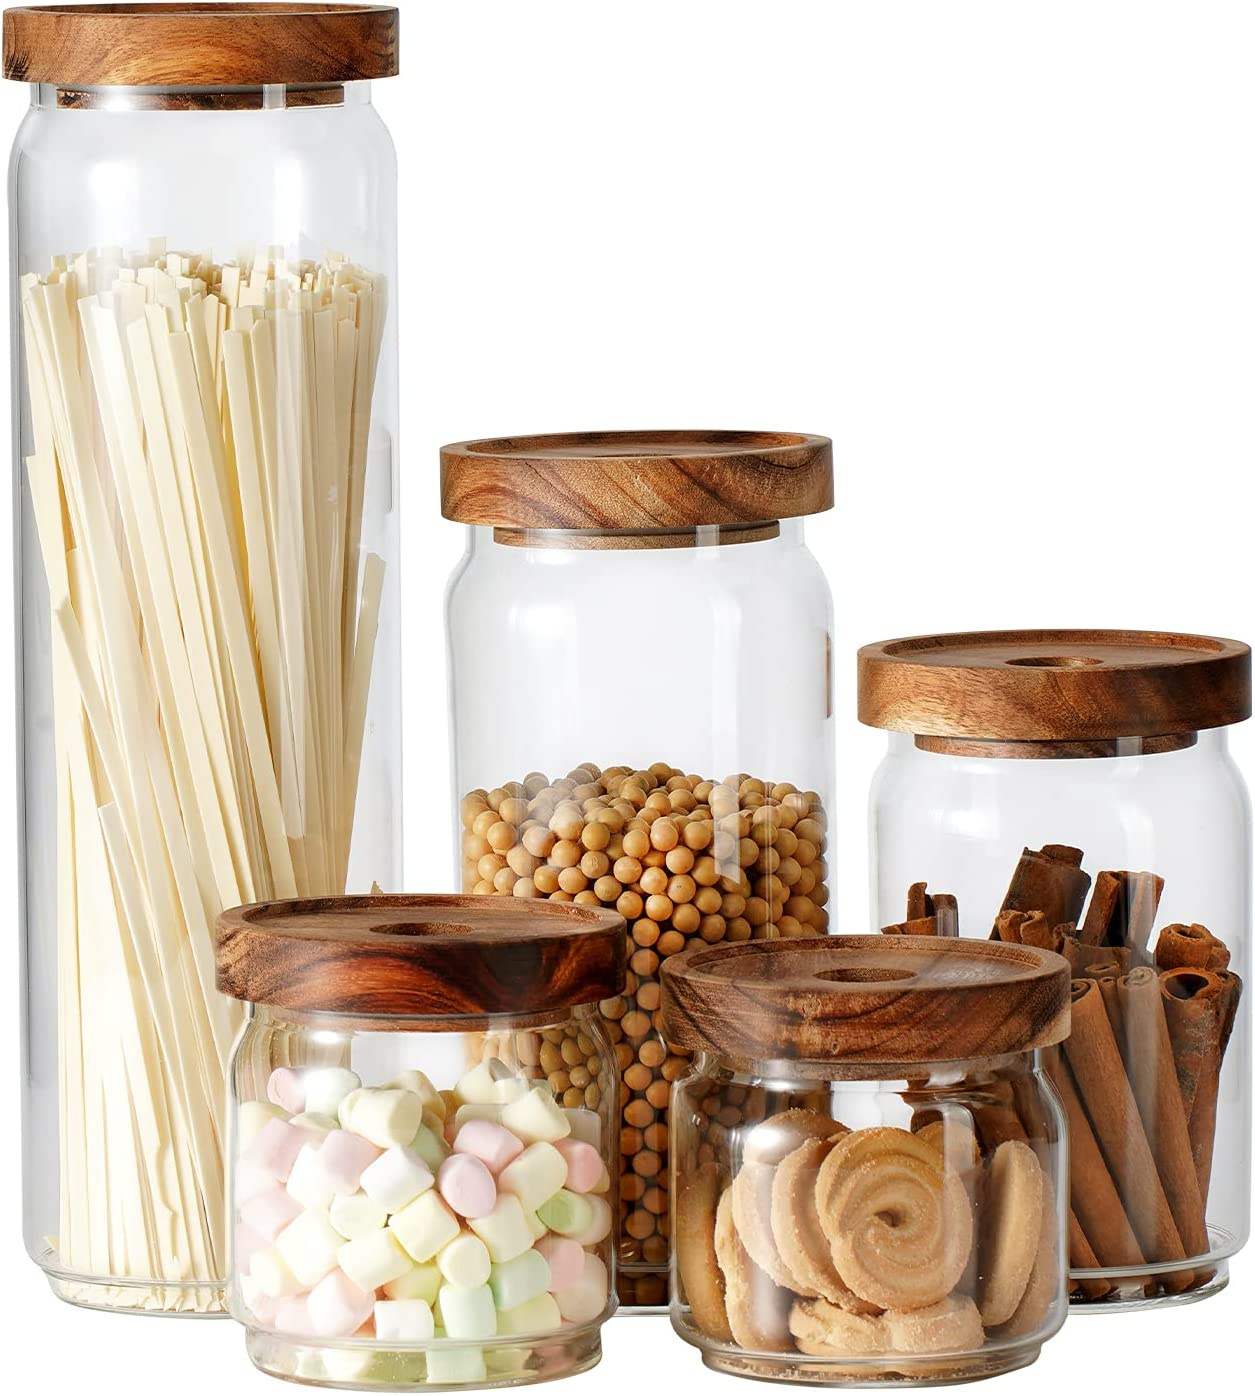 OPTVIT Glass Overseas parallel Colorado Springs Mall import regular item Jars Food Storage with Lids Container Wood Acacia